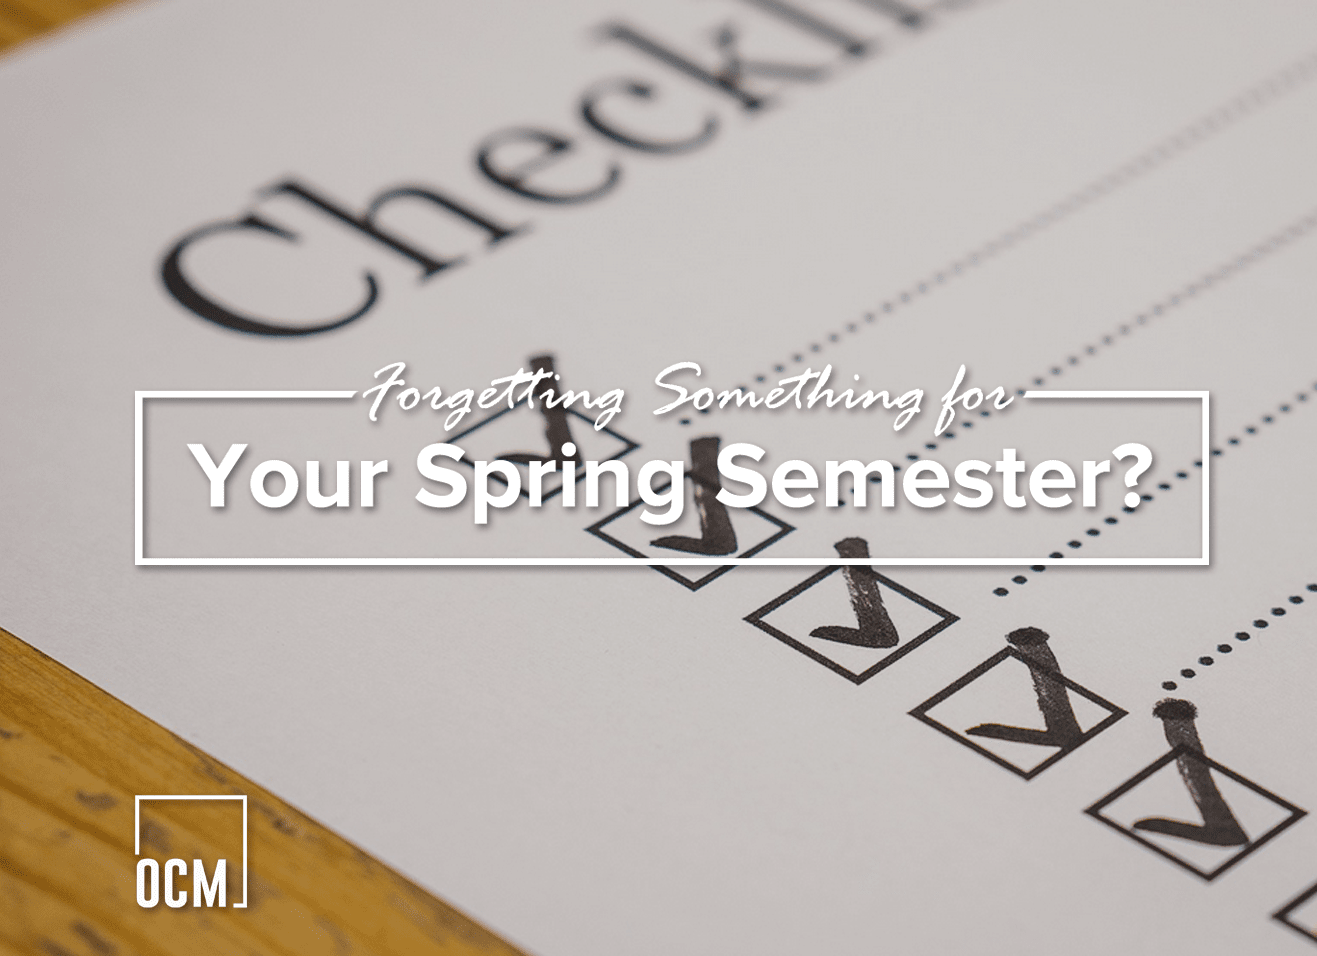 Forgetting Something for Your Spring Semester